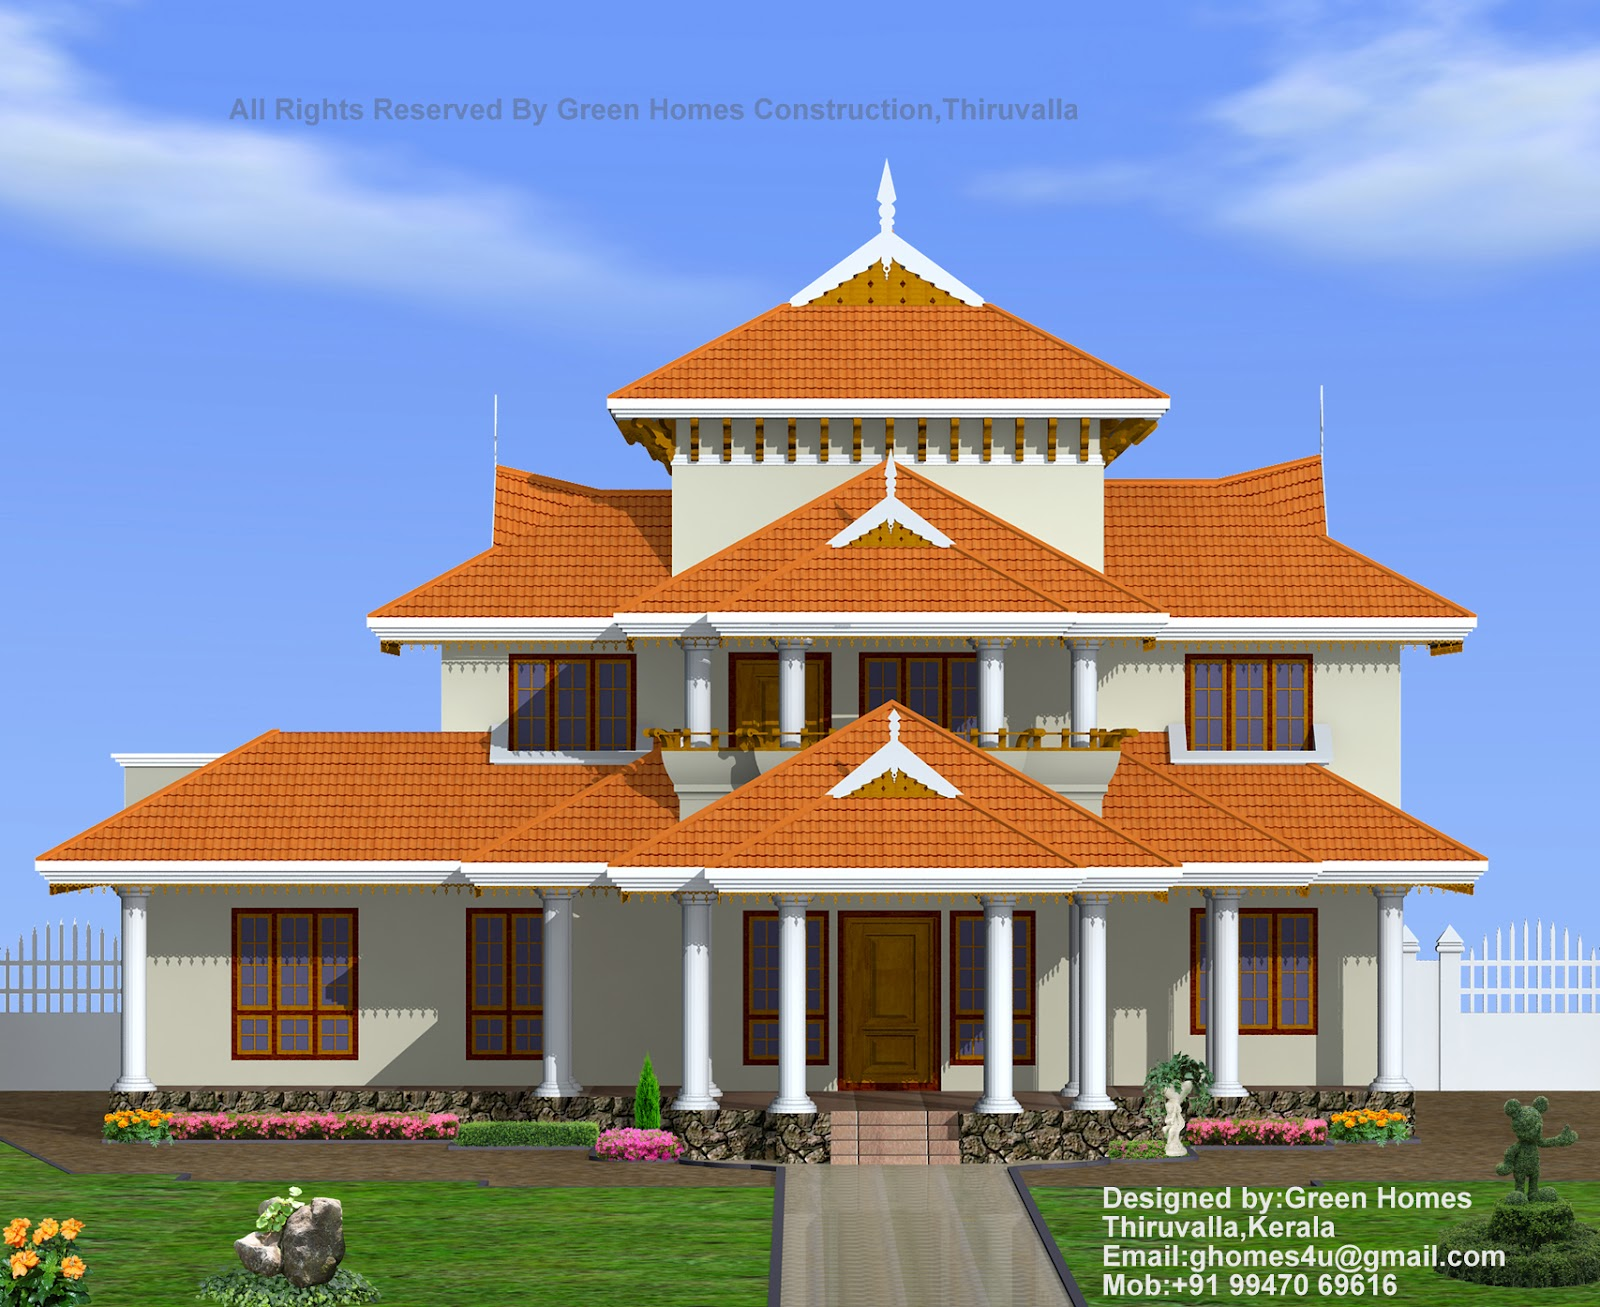 Green homes traditional kerala style house design 4000 sq for Home construction styles